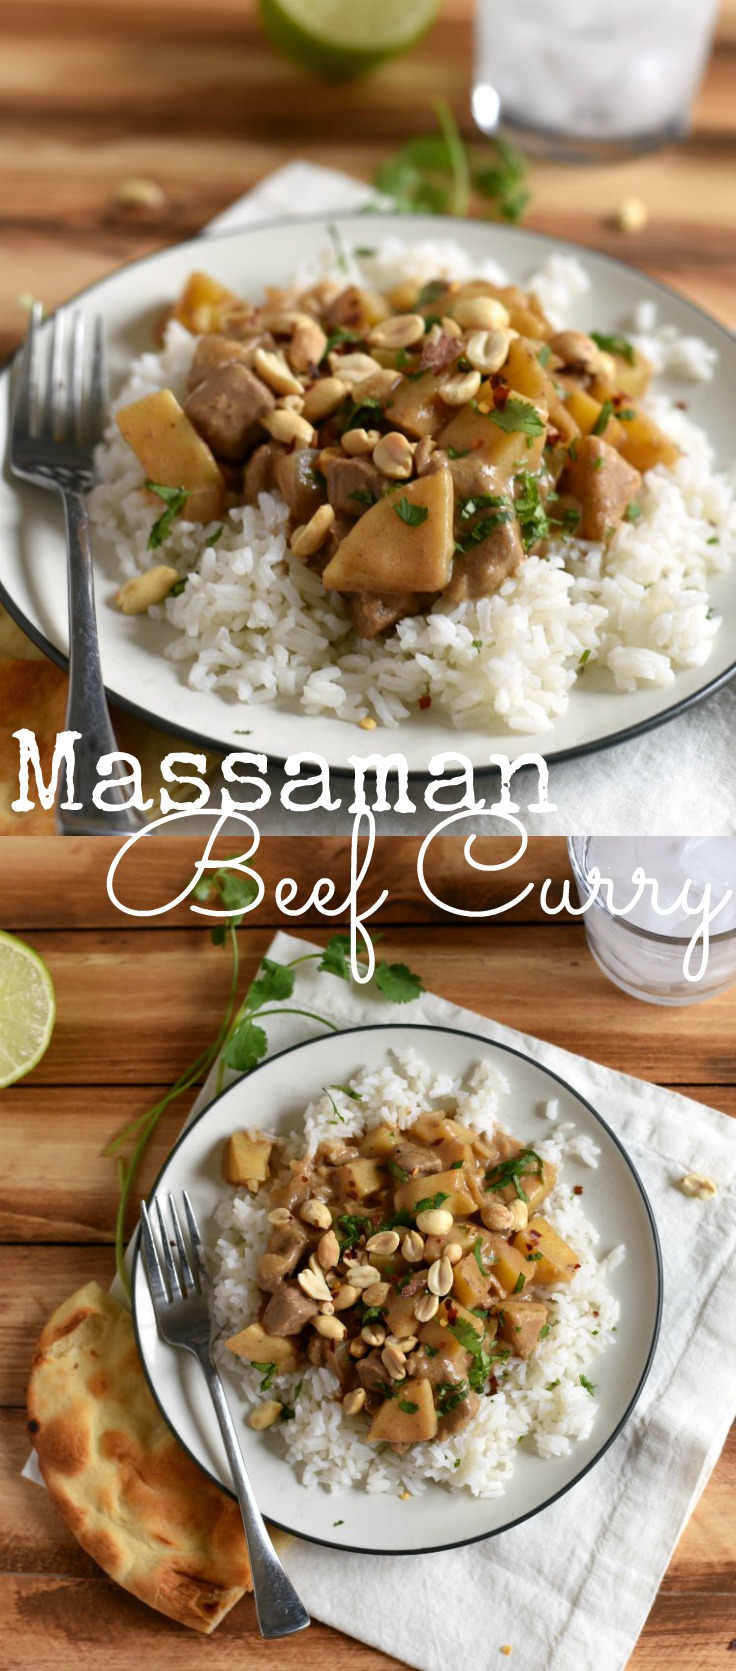 Massaman Beef Curry is easy & flavorful (not spicy) dish the whole family will love! The sauce is made from coconut milk & peanut butter!